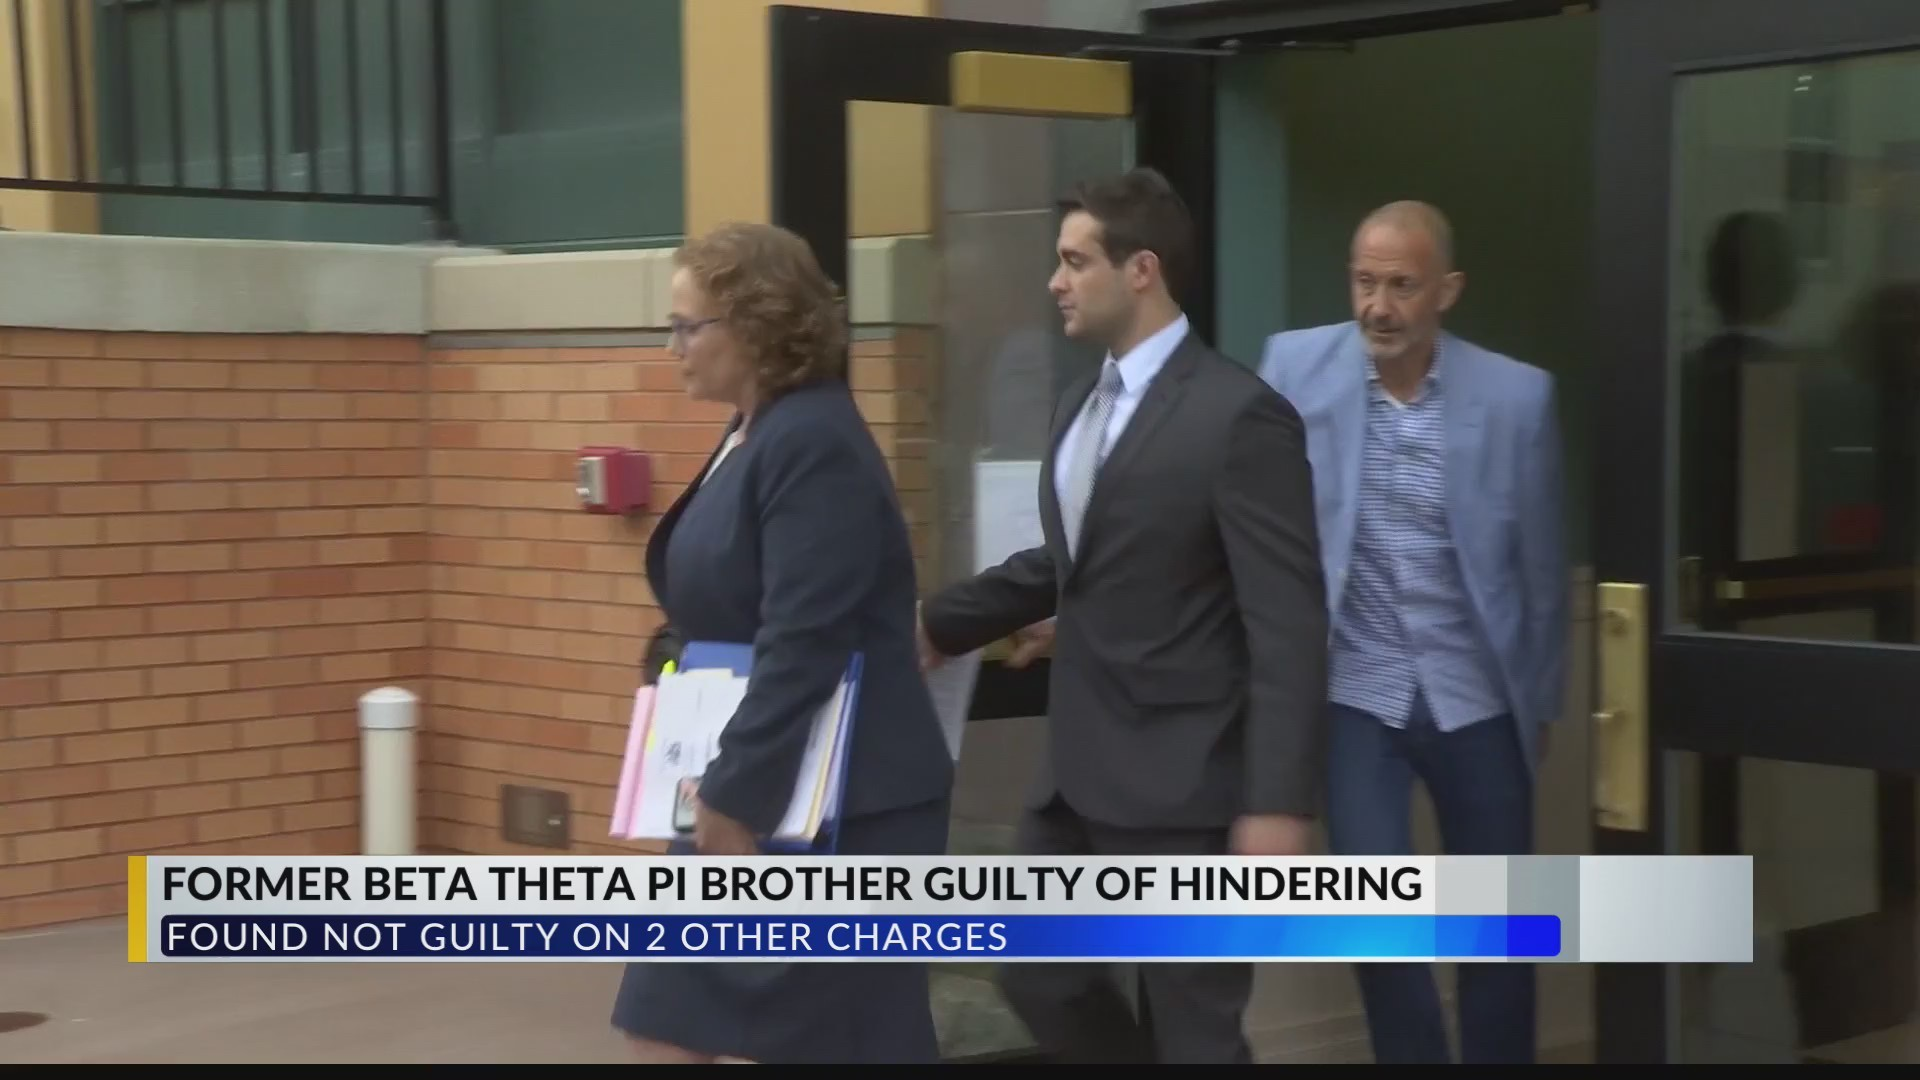 Former Beta Theta Pi Brother Found Guilty of Hindering... Acquitted of Tampering with Evidence and Obstruction